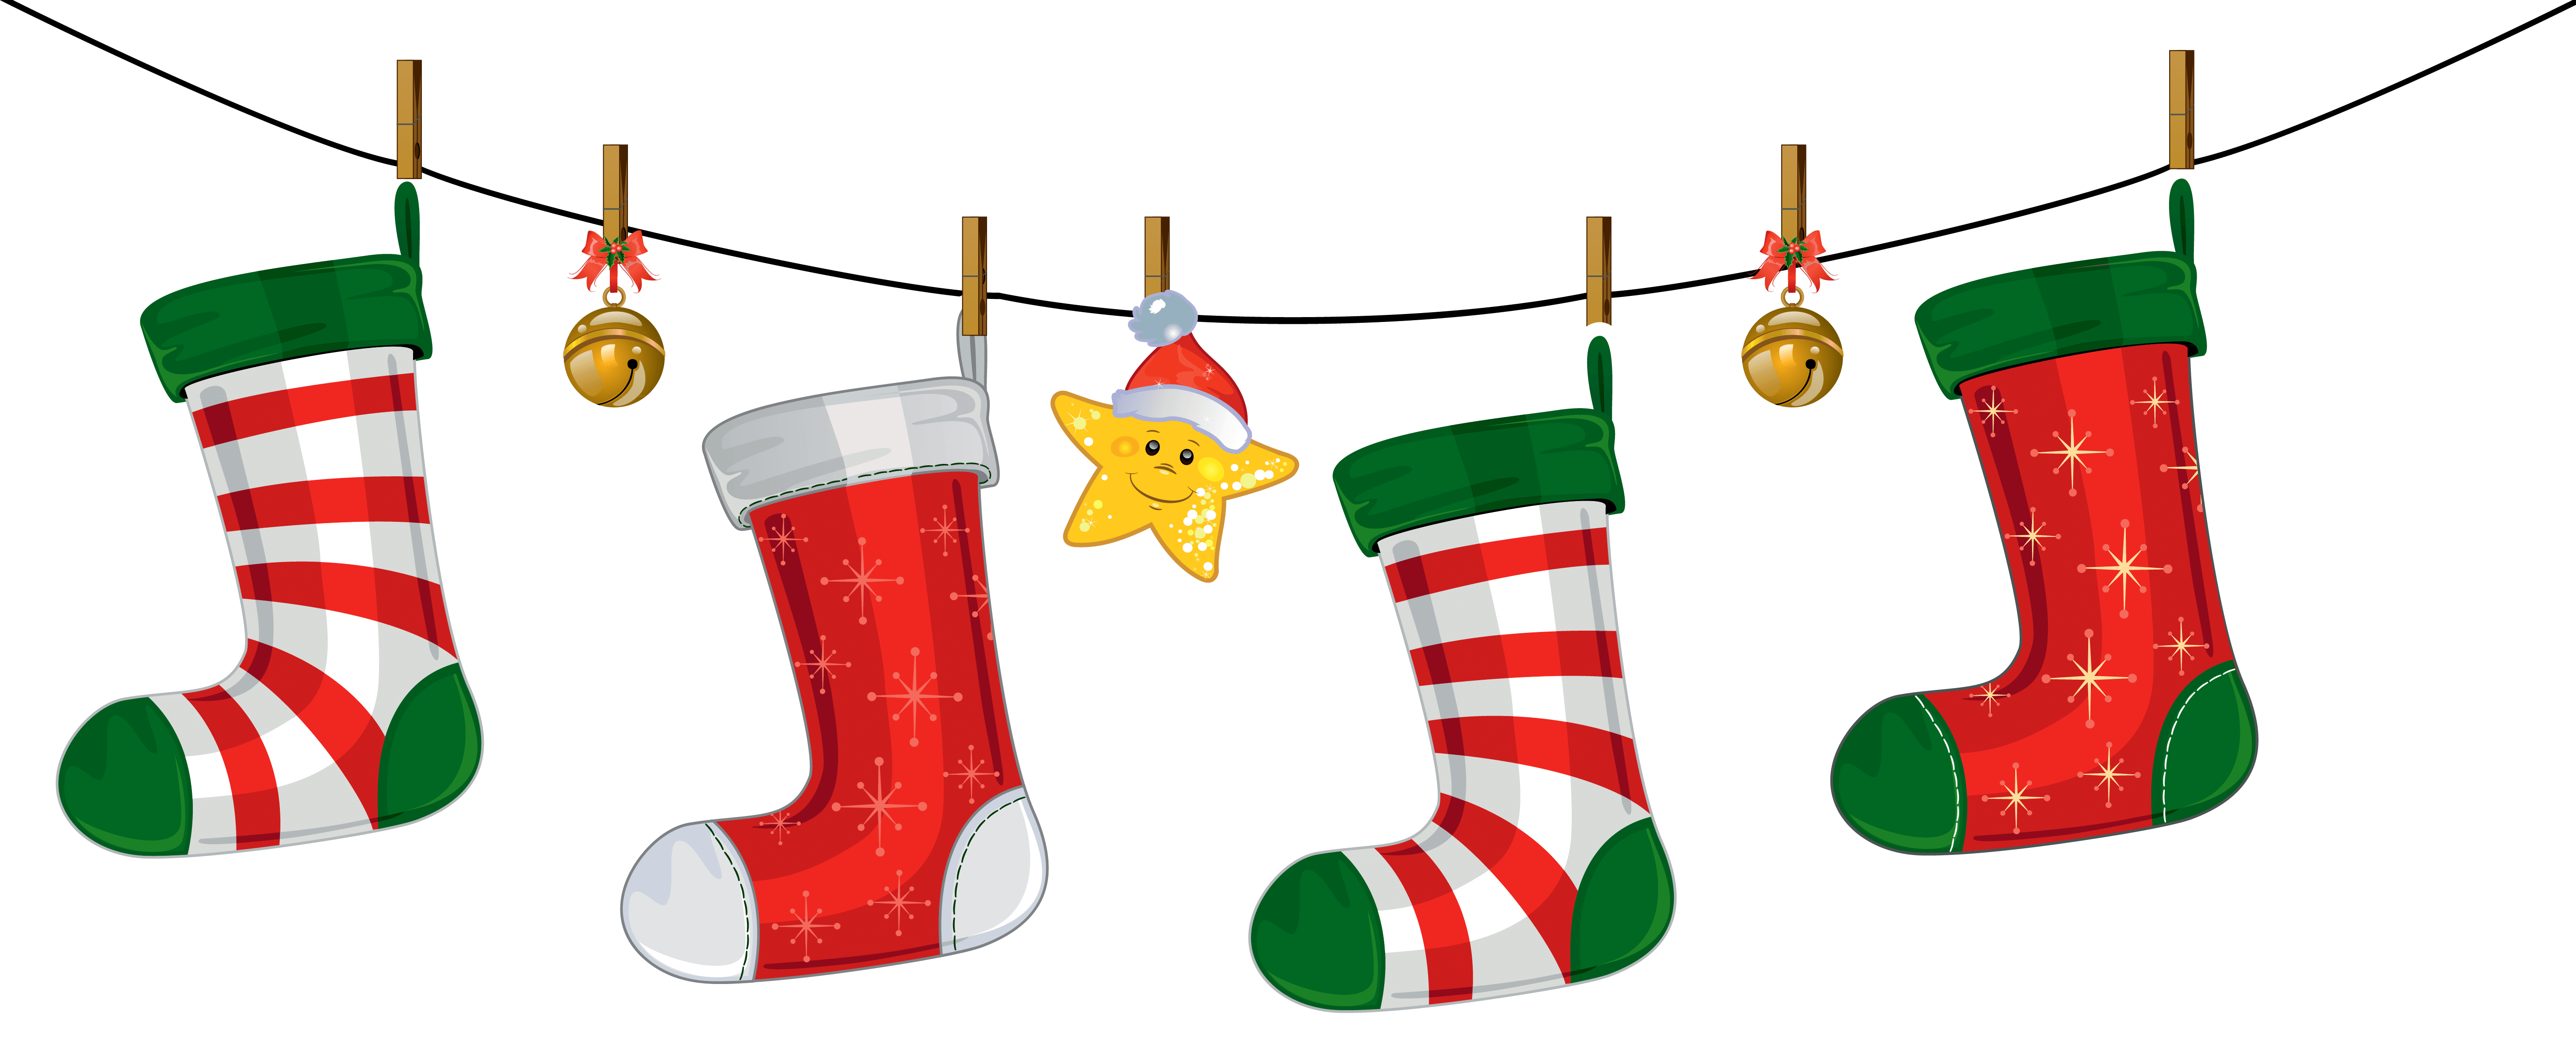 Nobby design ideas stocking. Worm clipart warm